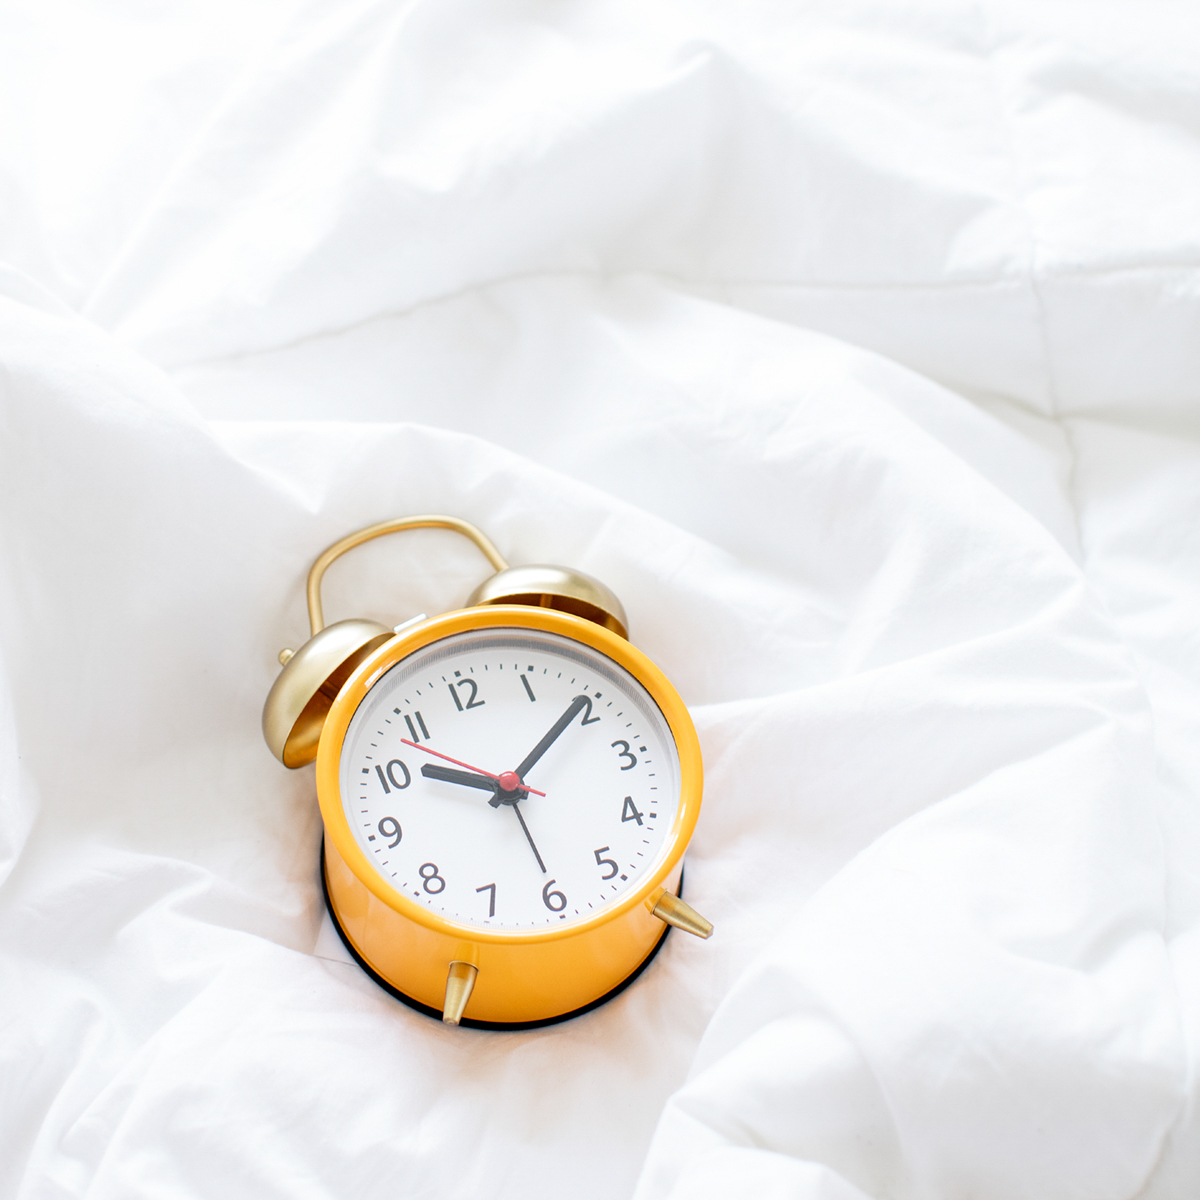 Set timers for yourself. You will be shocked at how much you can accomplish if you set a one-hour timer for a room or space to pack. This is also good for reminding you when it's time to stop and refuel with lunch or coffee!